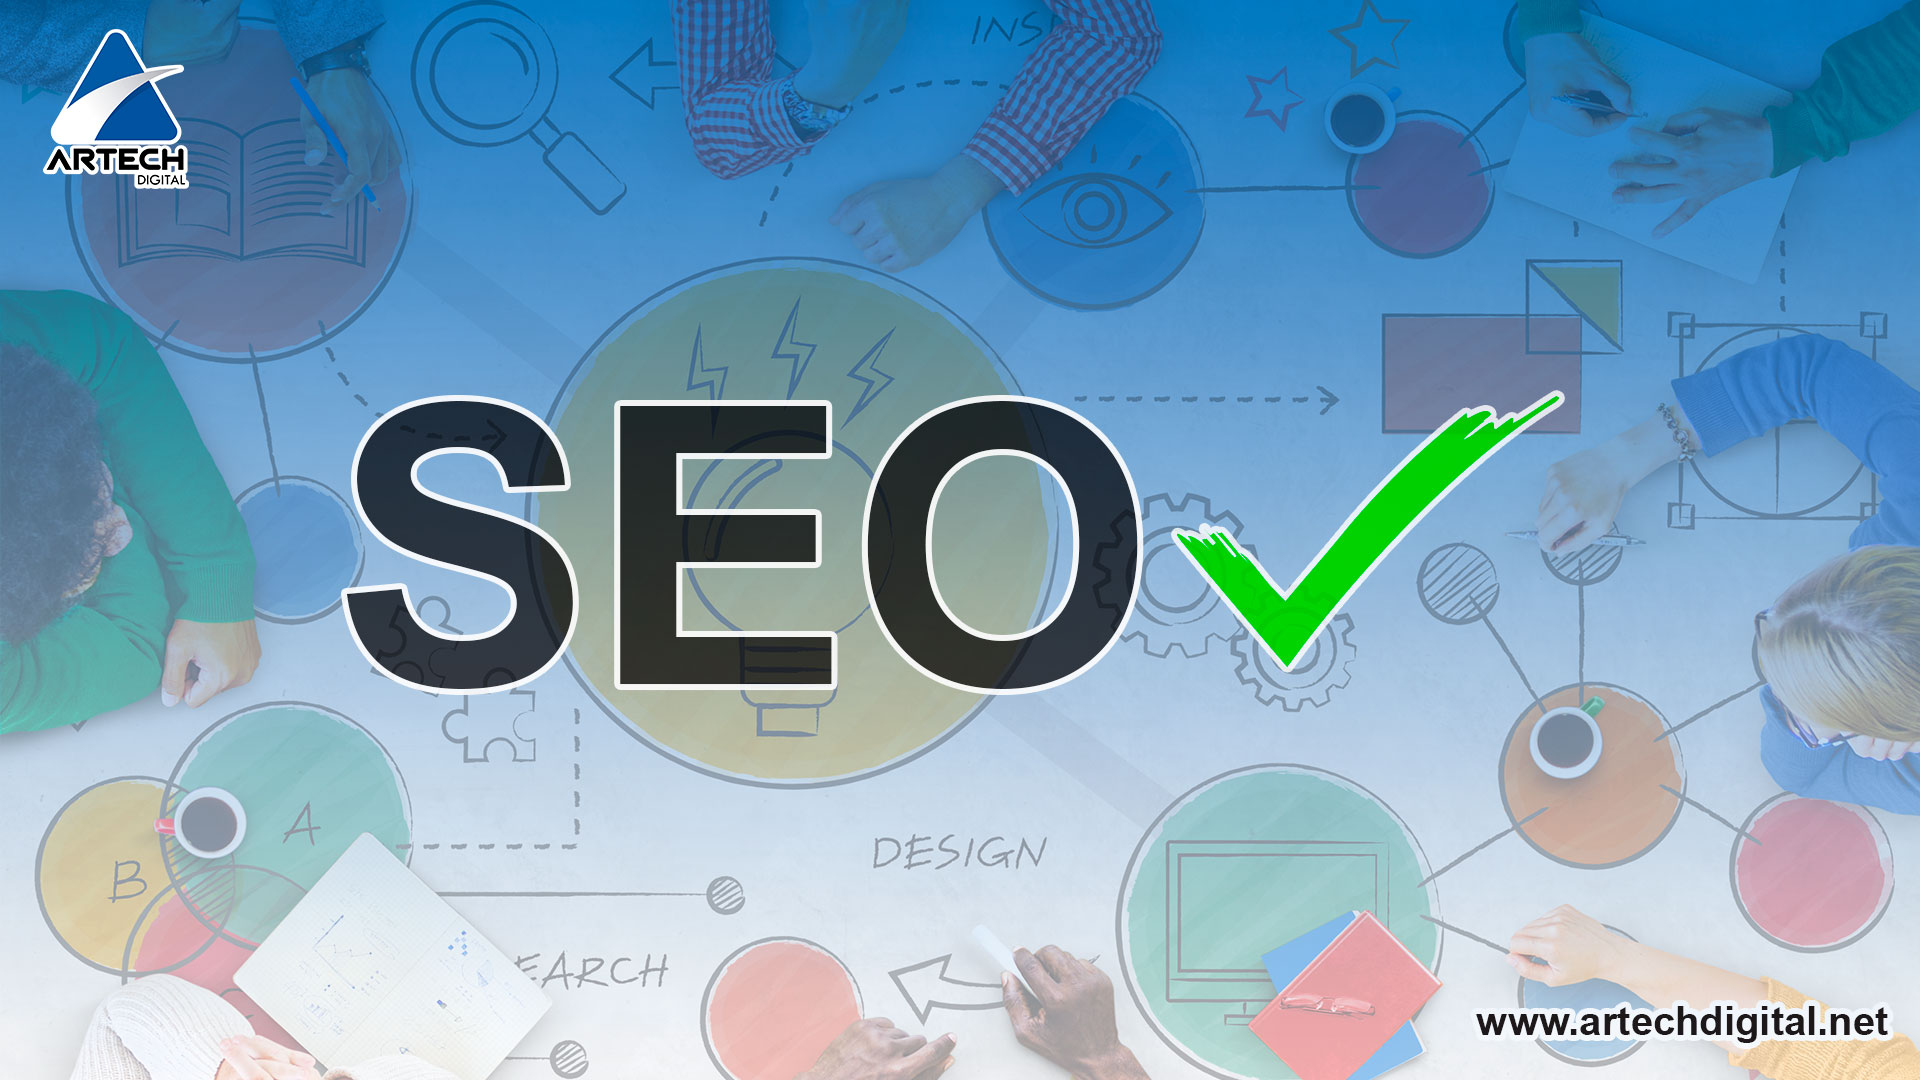 tendencias seo - Artech Digital